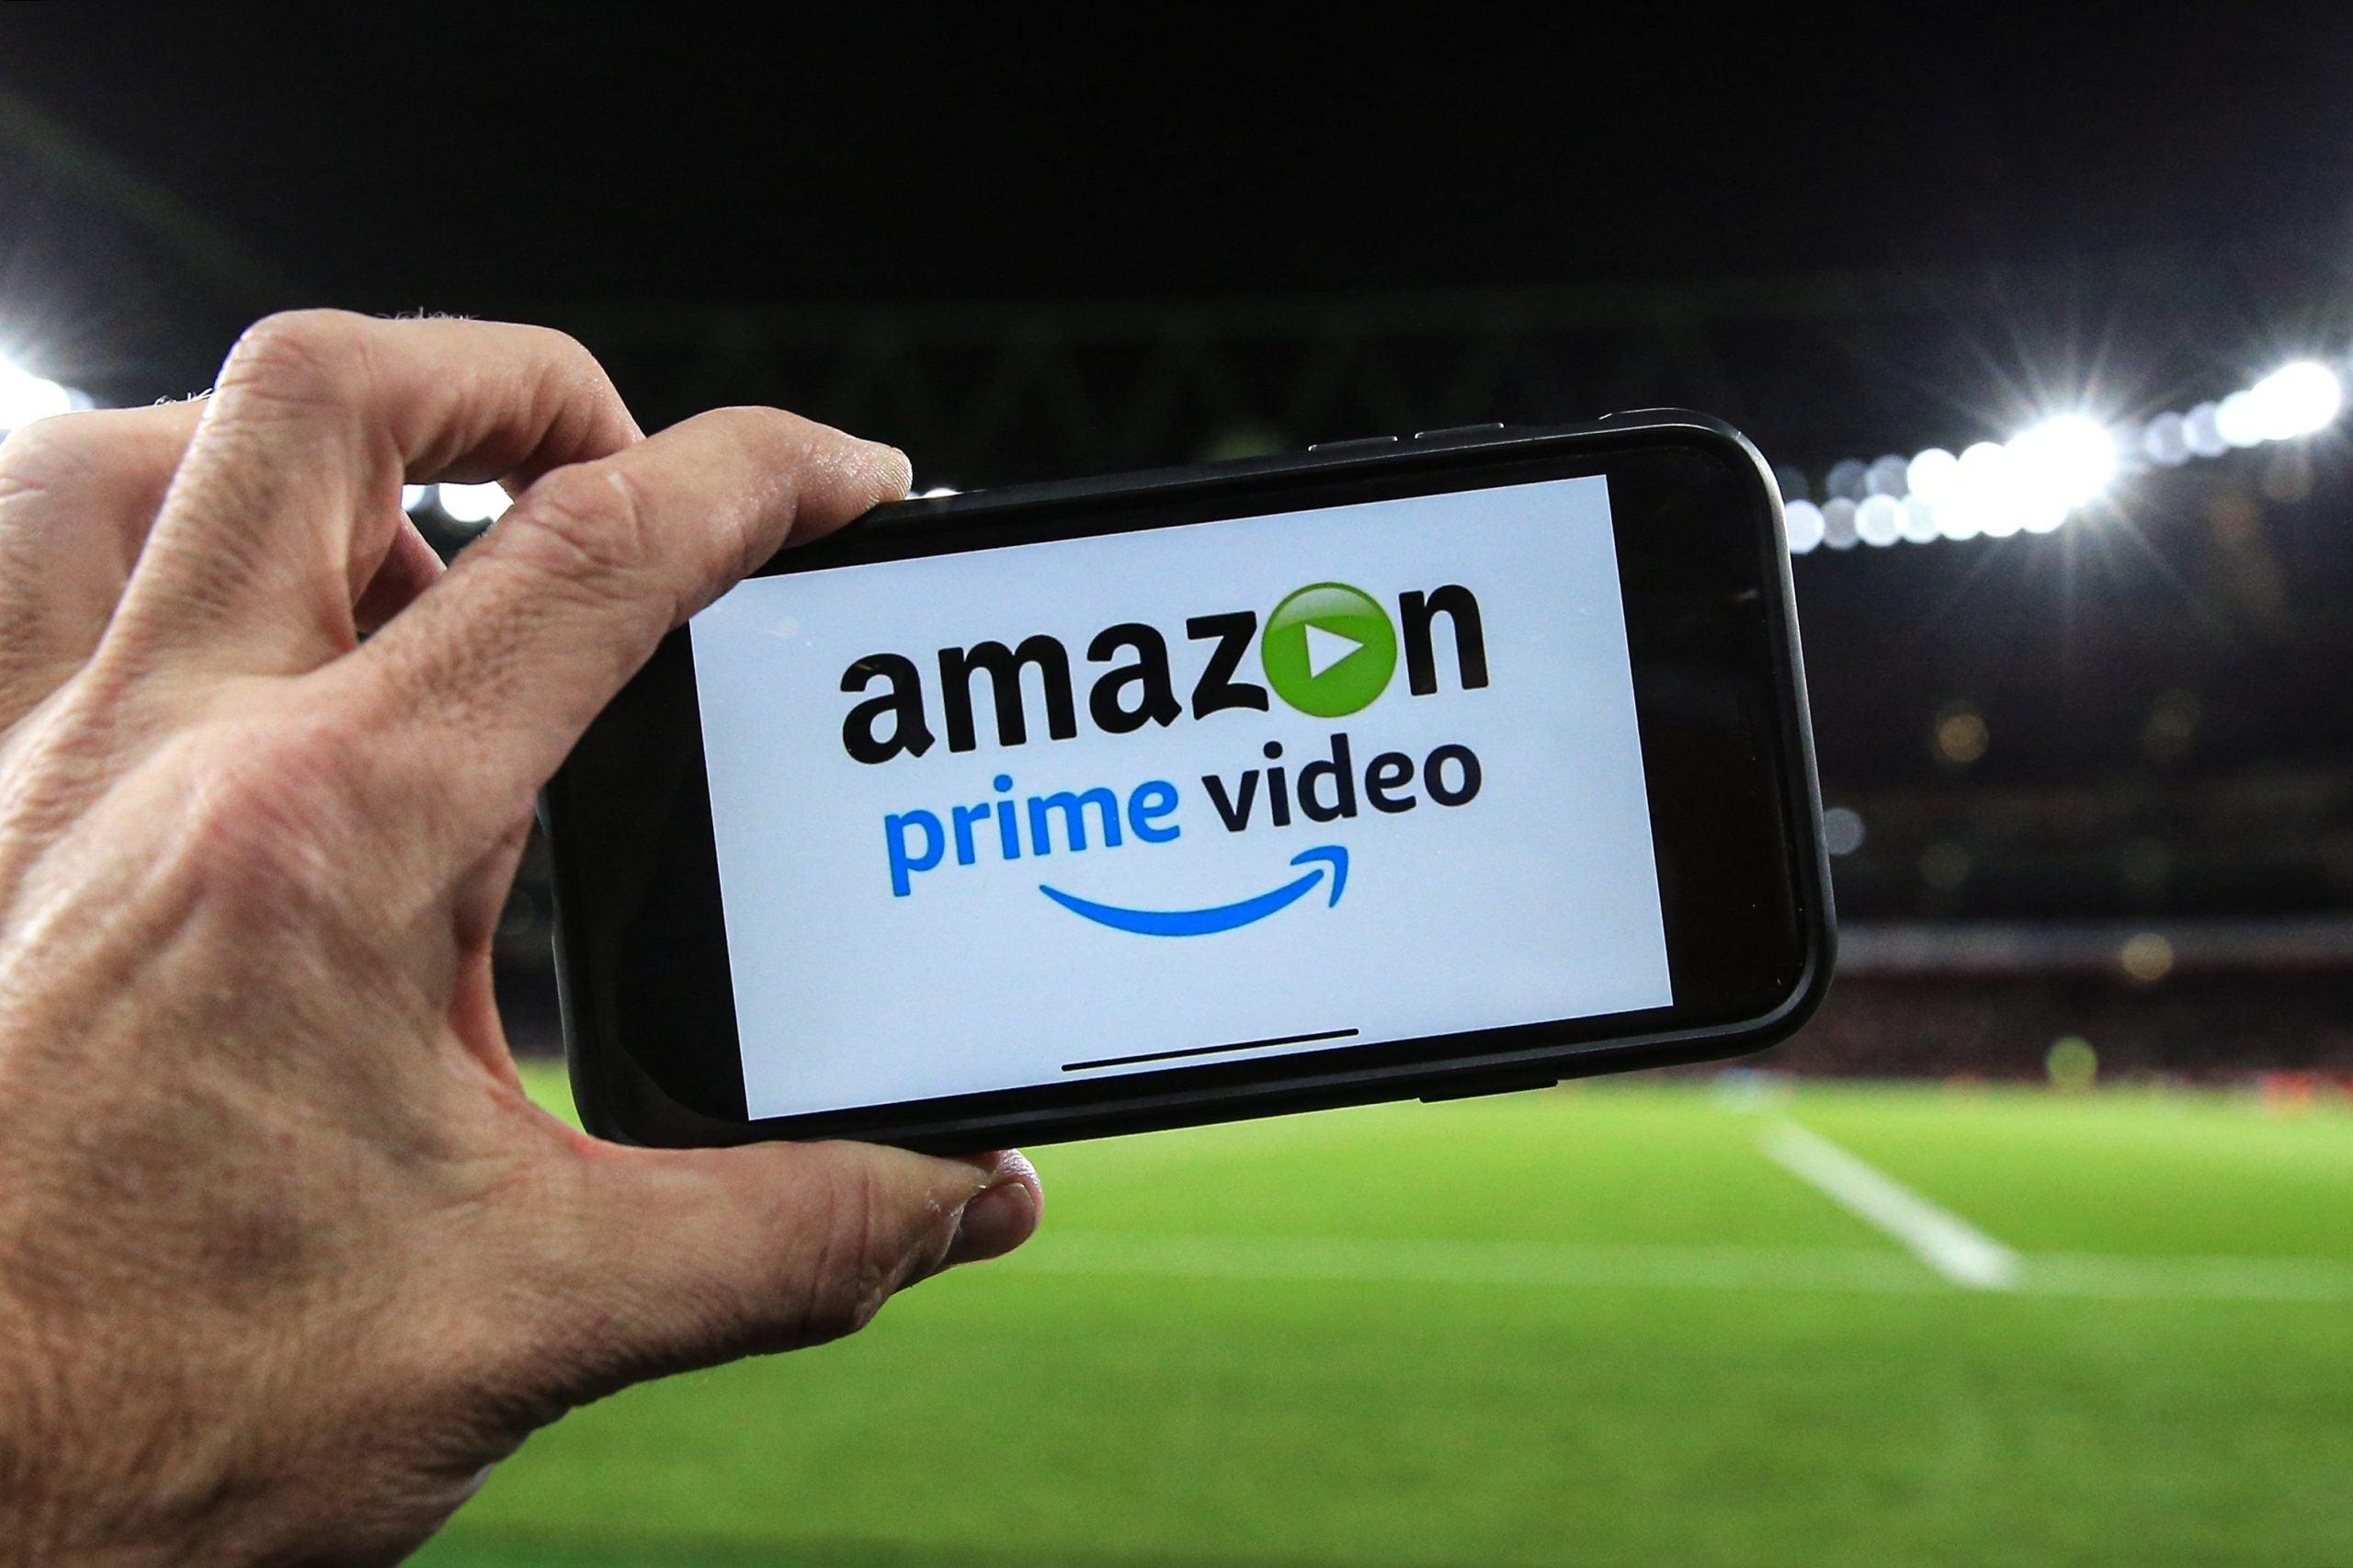 Amazon's comforting Christmas Premier League coverage masked its long-term ambitions